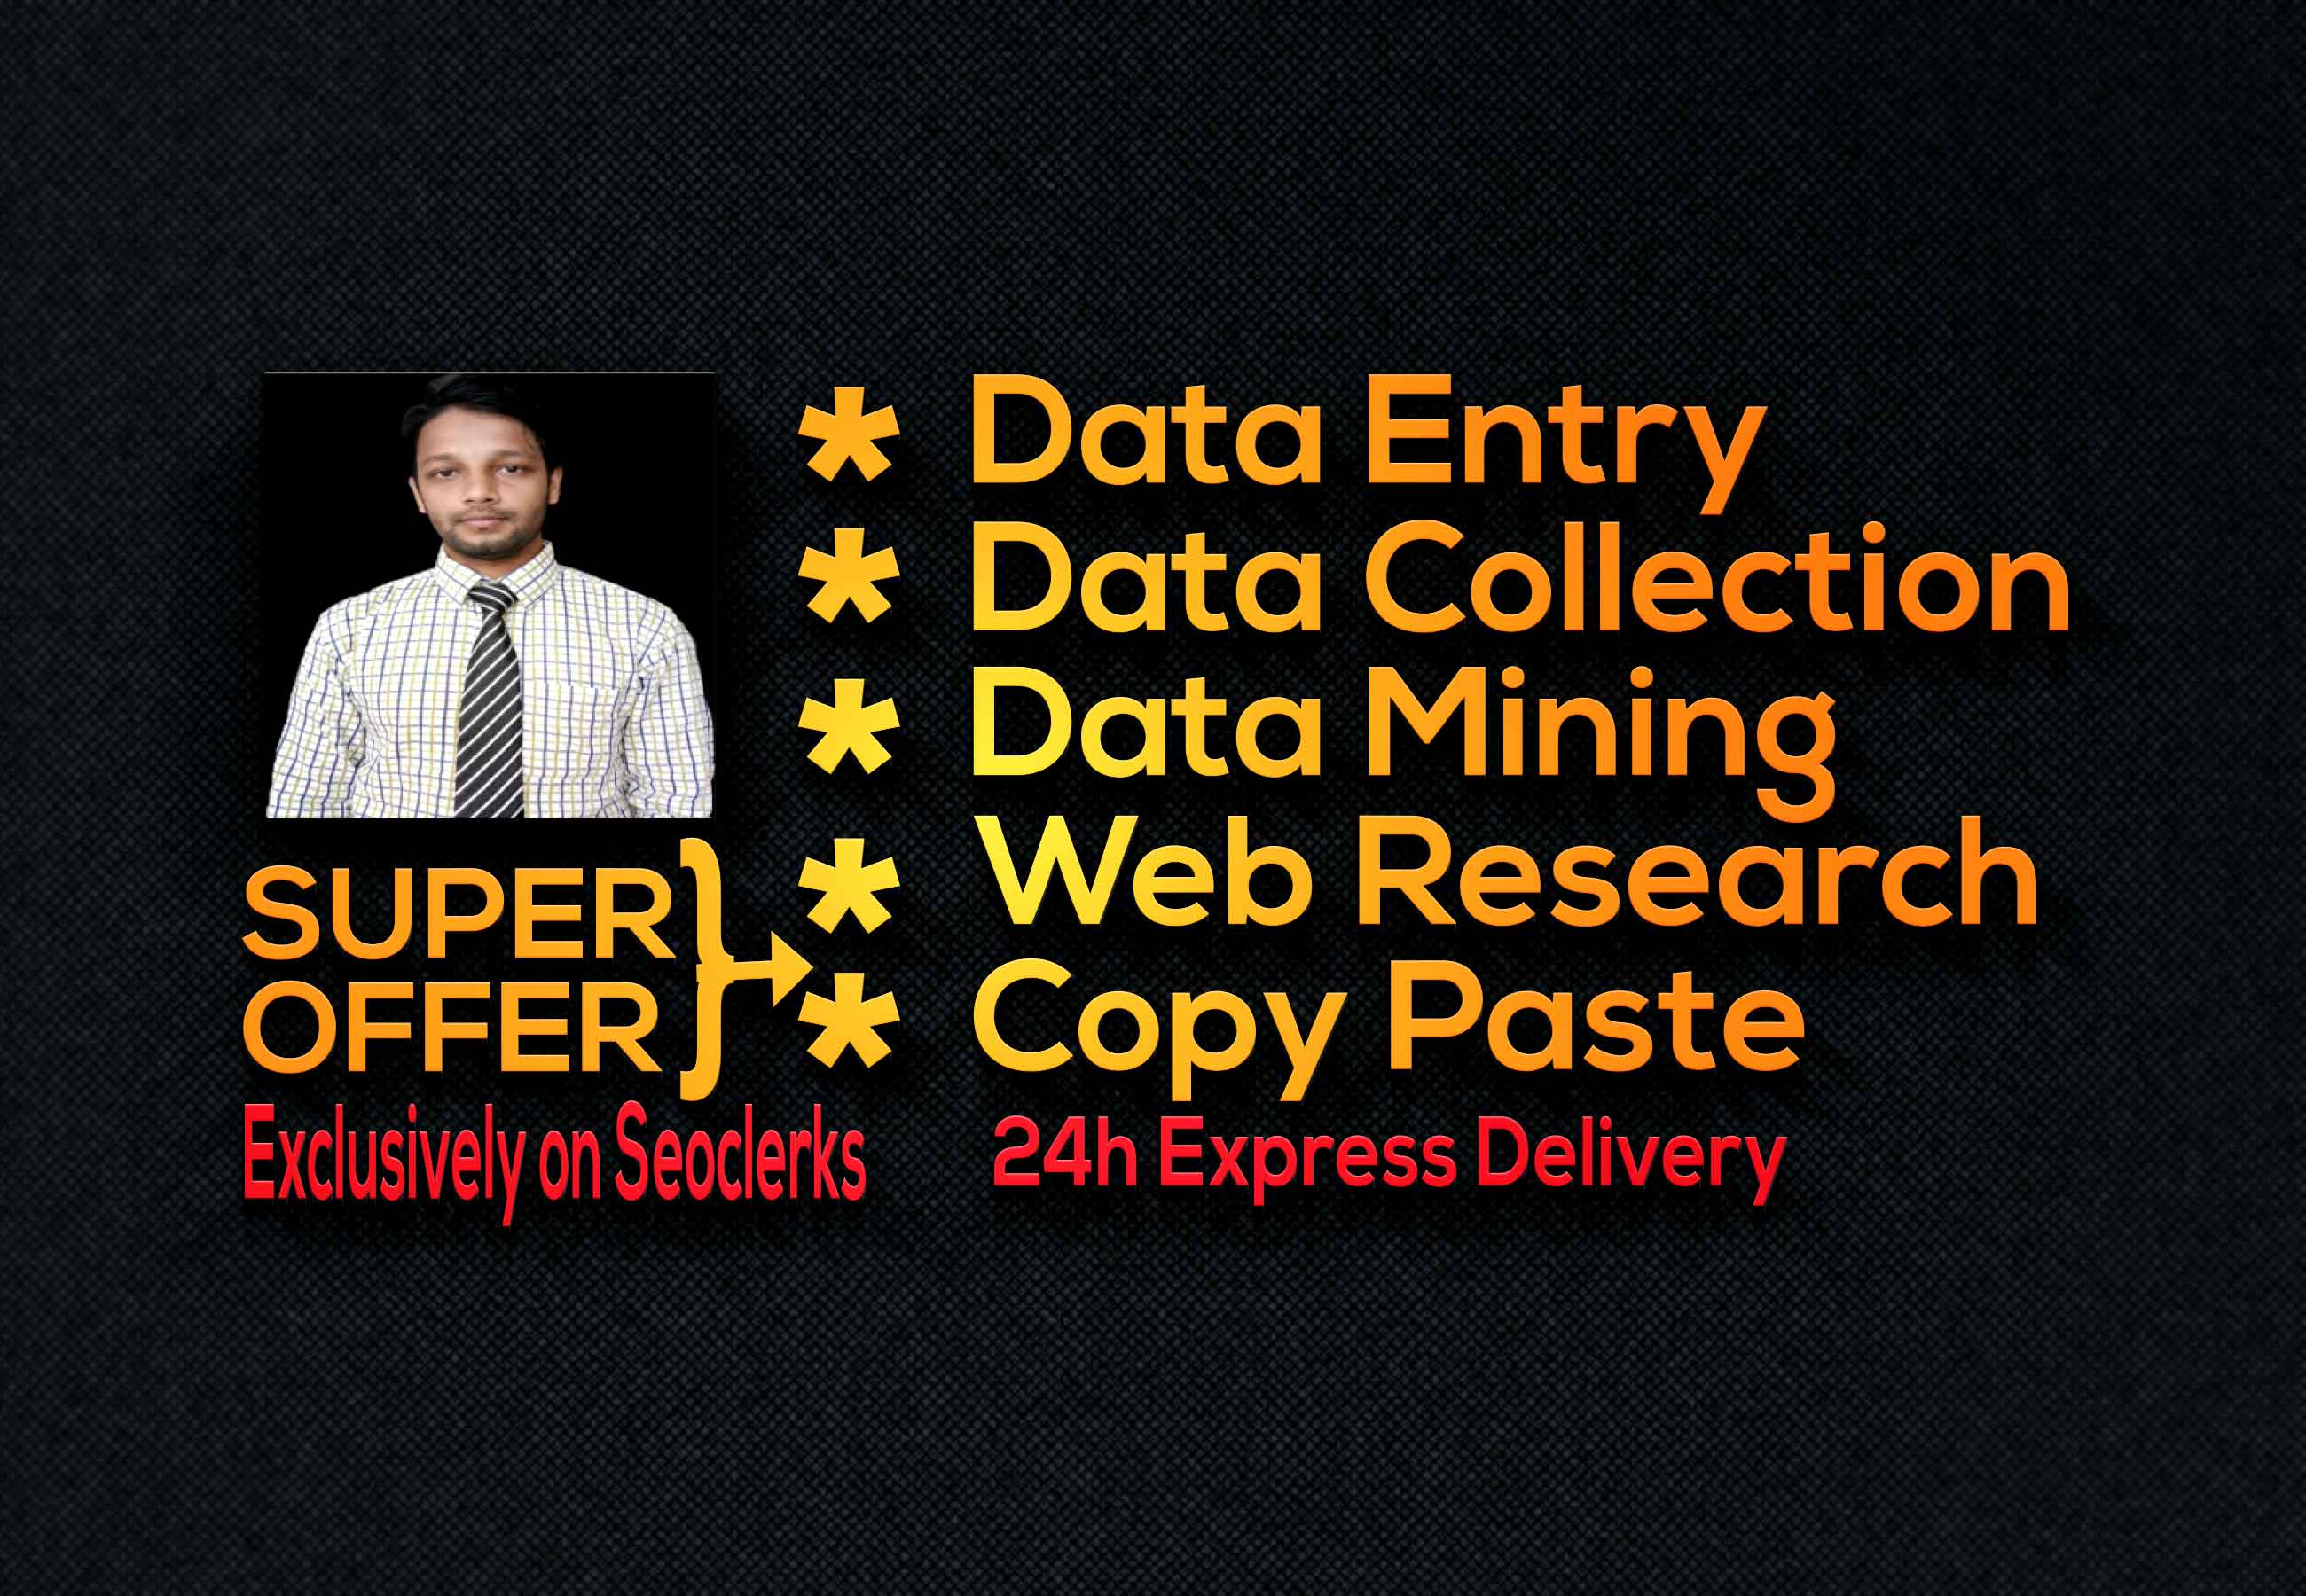 I will be your virtual assistant for Data Entry,  Web Research,  Typing,  Copy paste,  Excel ETC